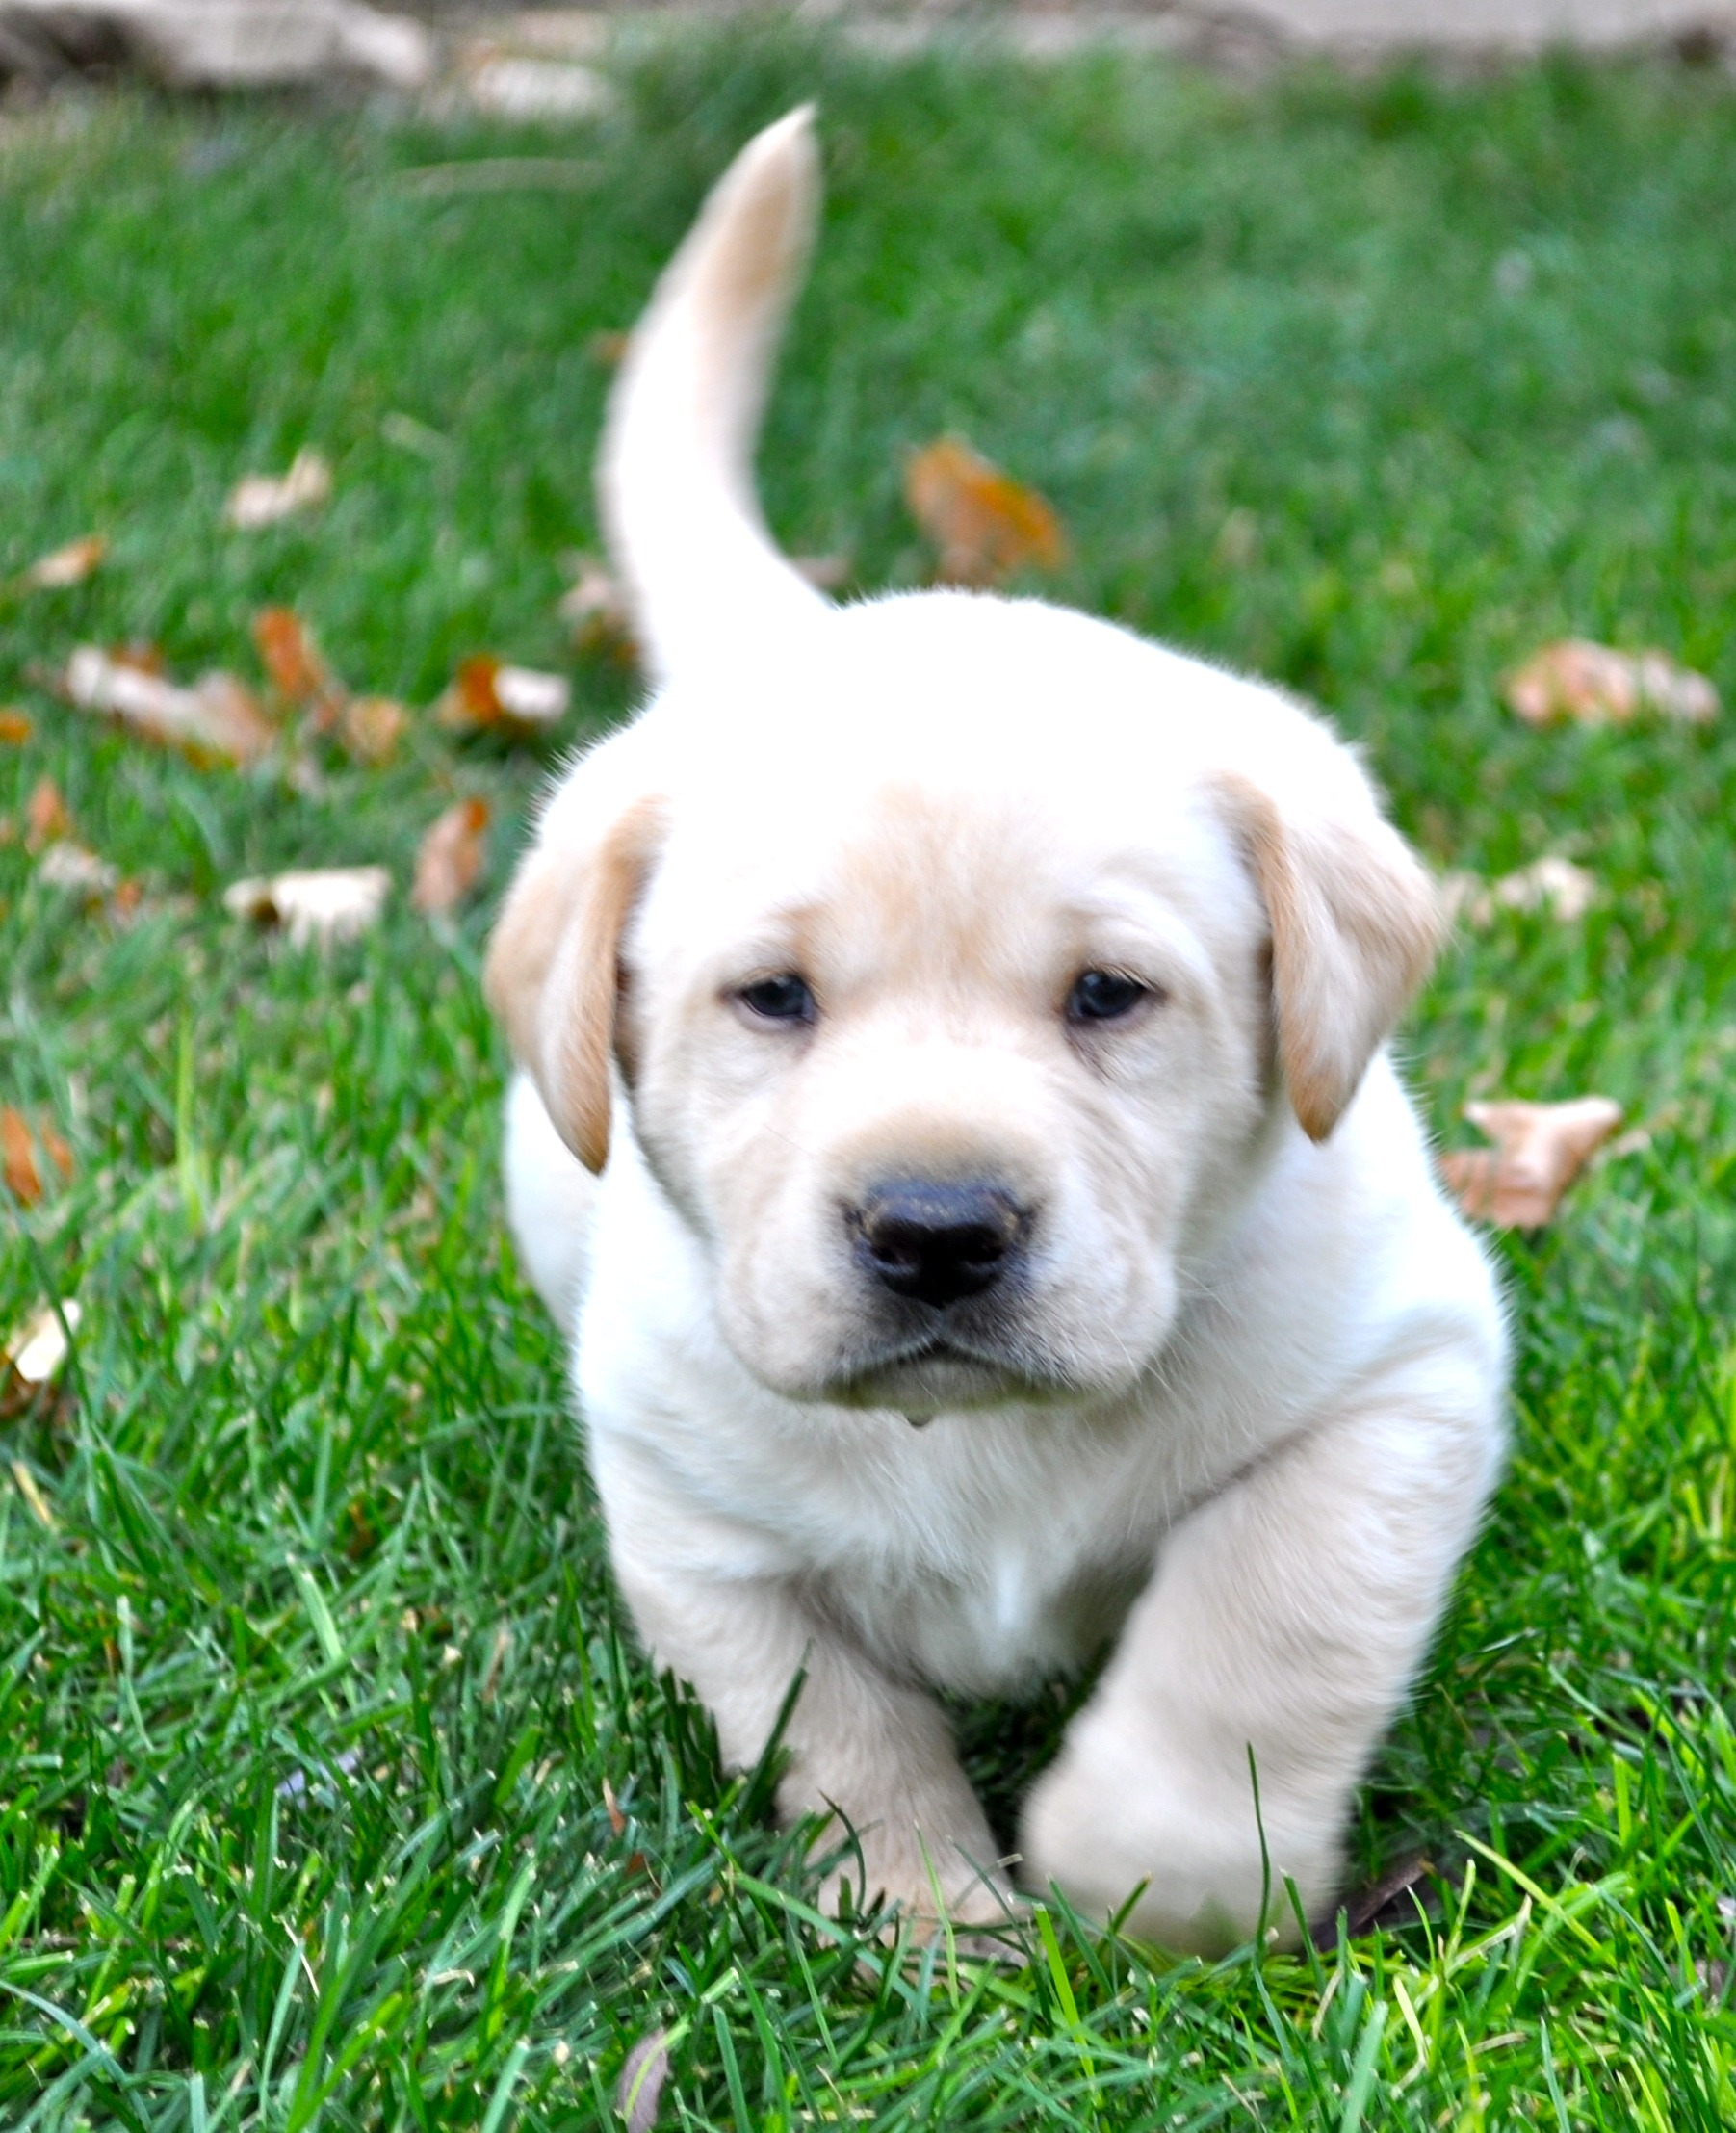 Adorable Puppy Pictures That Will Make Your Day Better 546529274